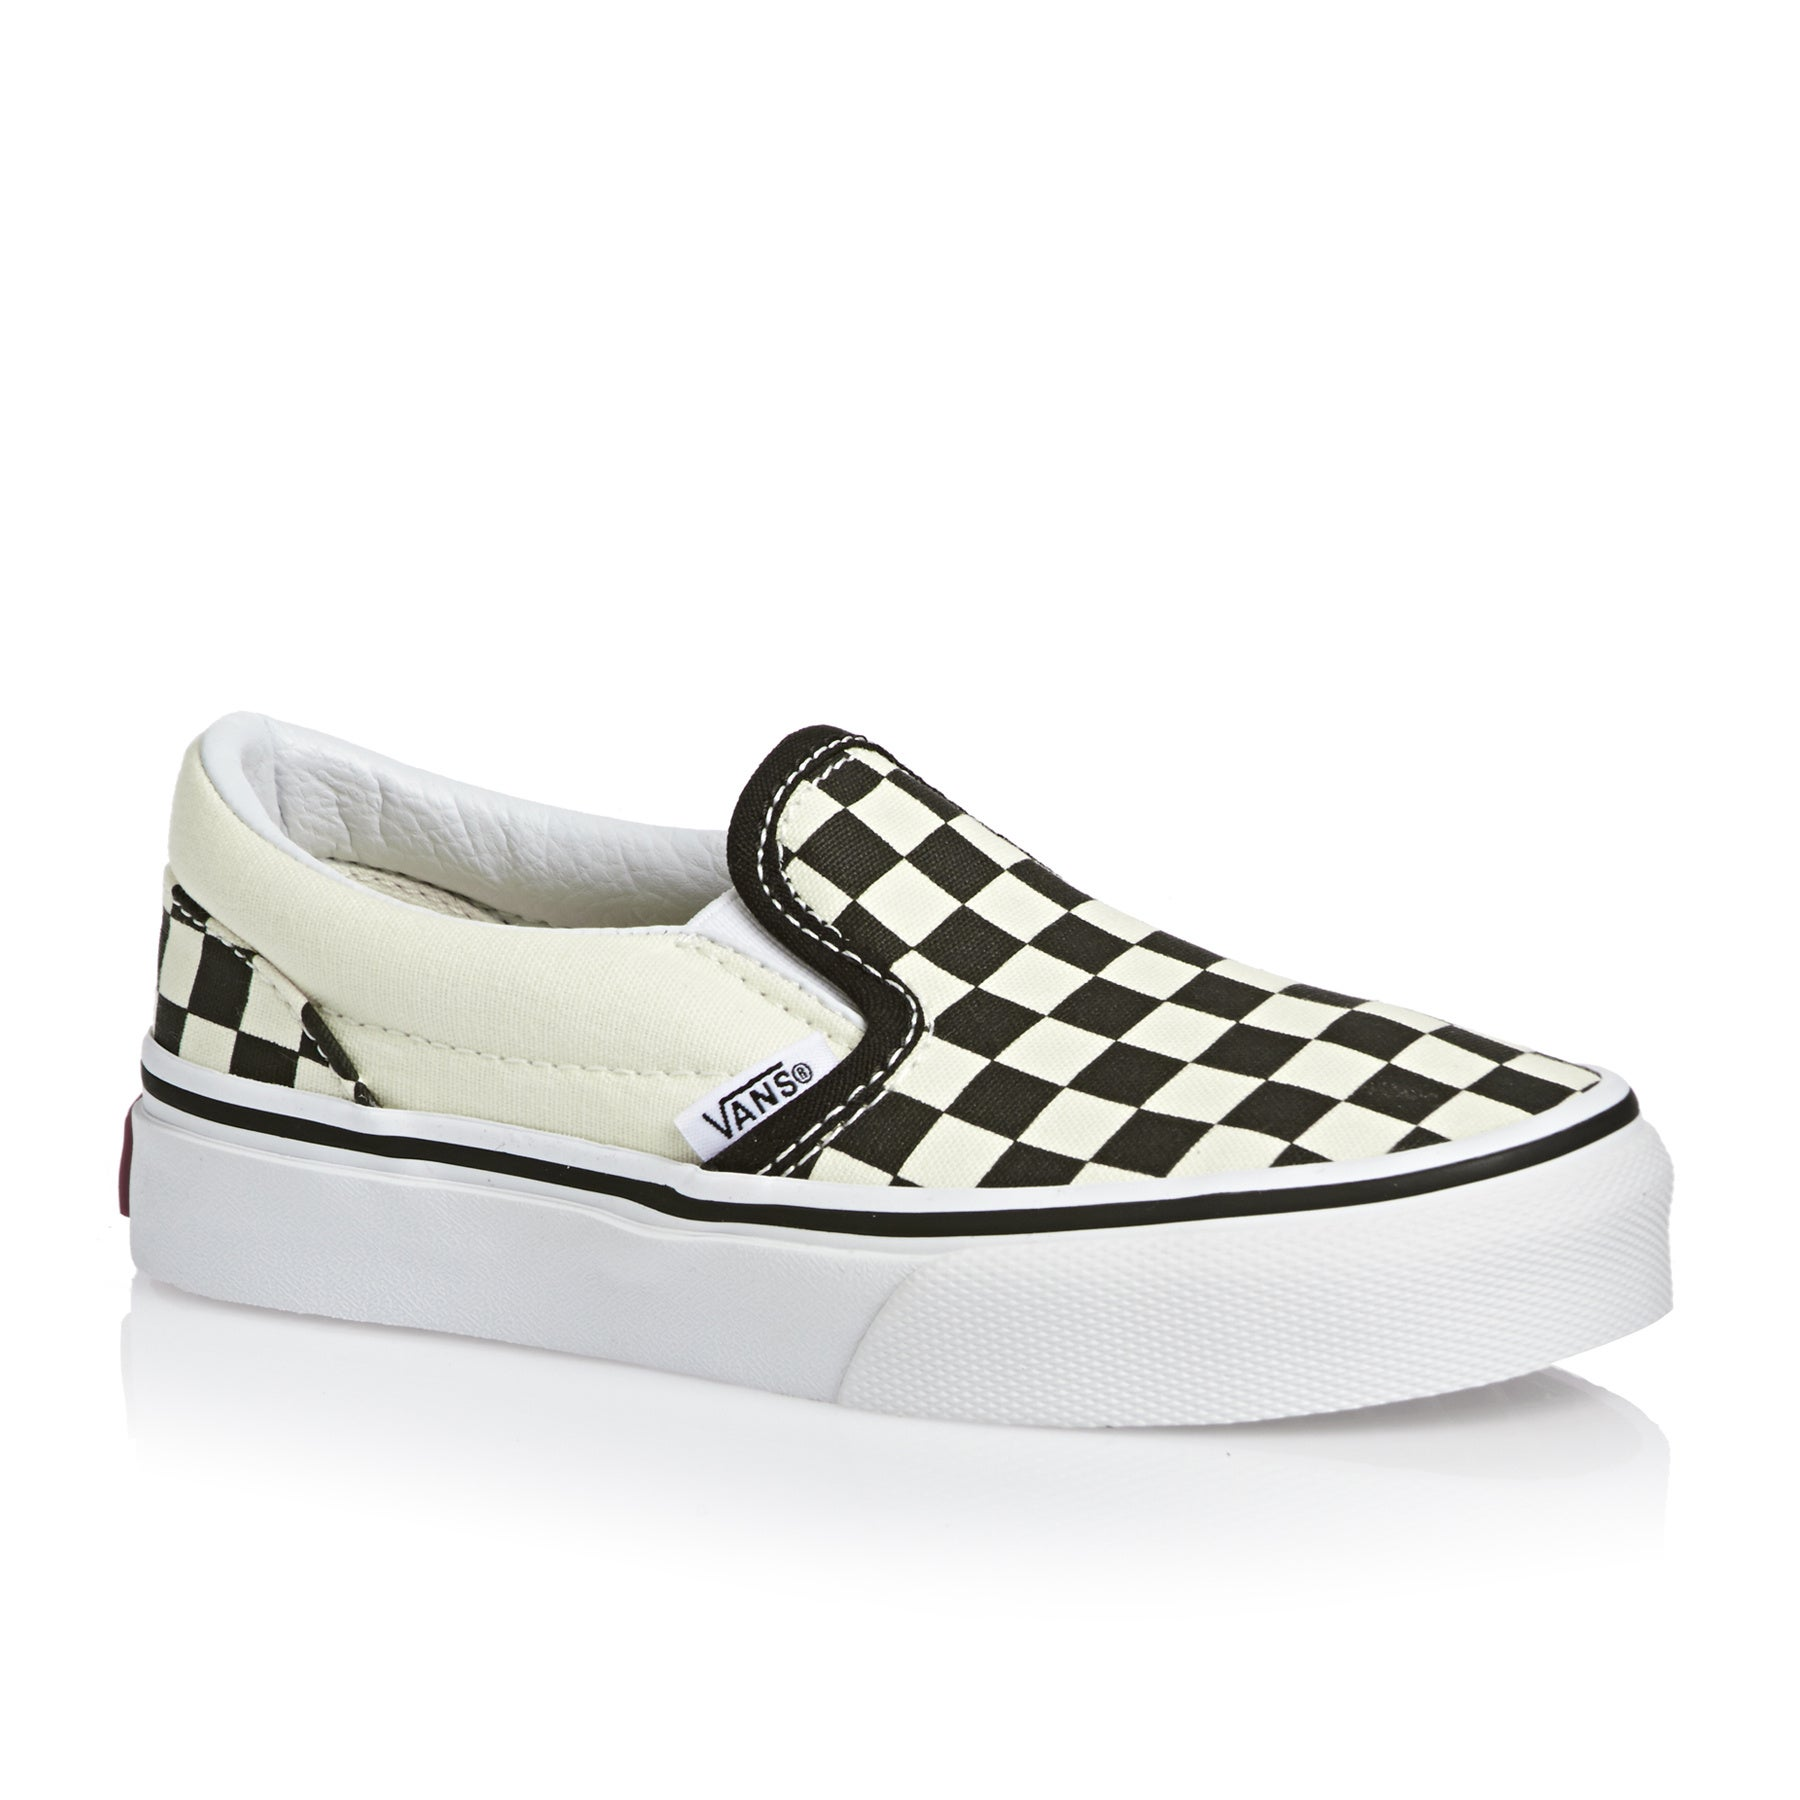 Vans Classic Slip On Kids Shoes - Checkerboard Black White